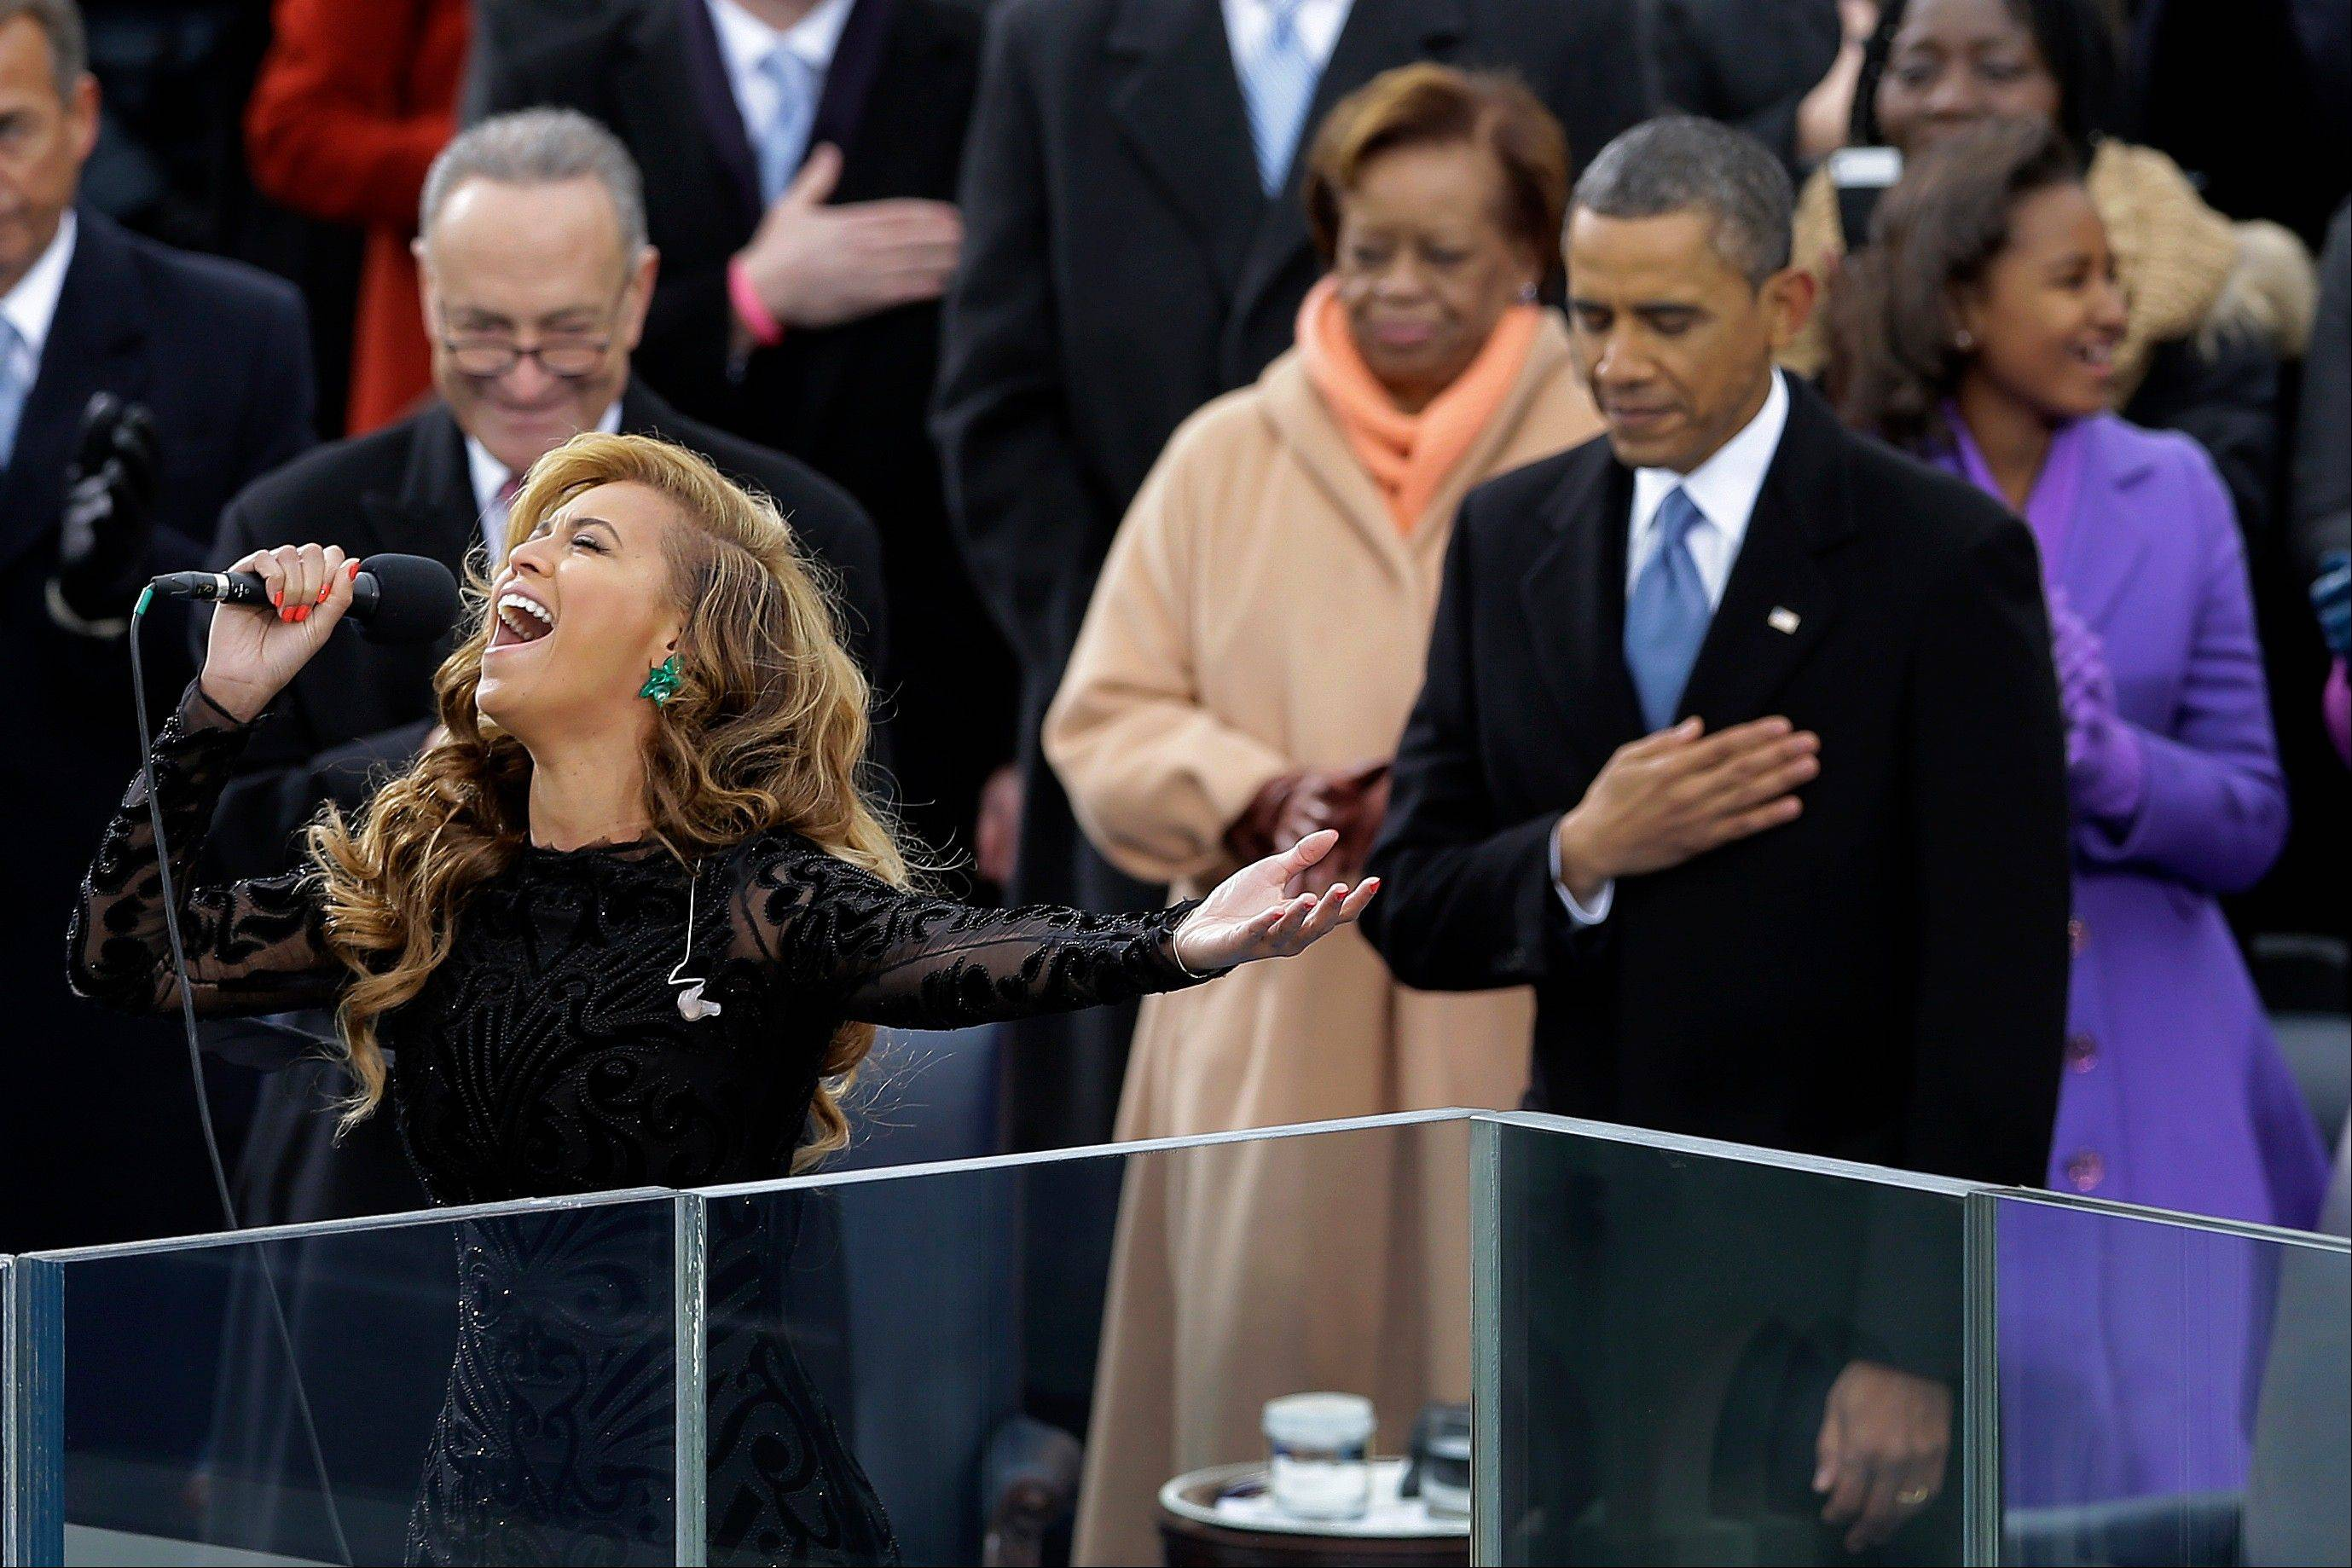 Whether Beyonc� actually sang at the inauguration of President Barack Obama is a tempest in a teapot, but dig deeper and it reveals something about American society at this moment. In small ways, we seem to be constantly learning that the things we see and experience aren�t exactly what they�re billed to be � and that we may not care all that much.